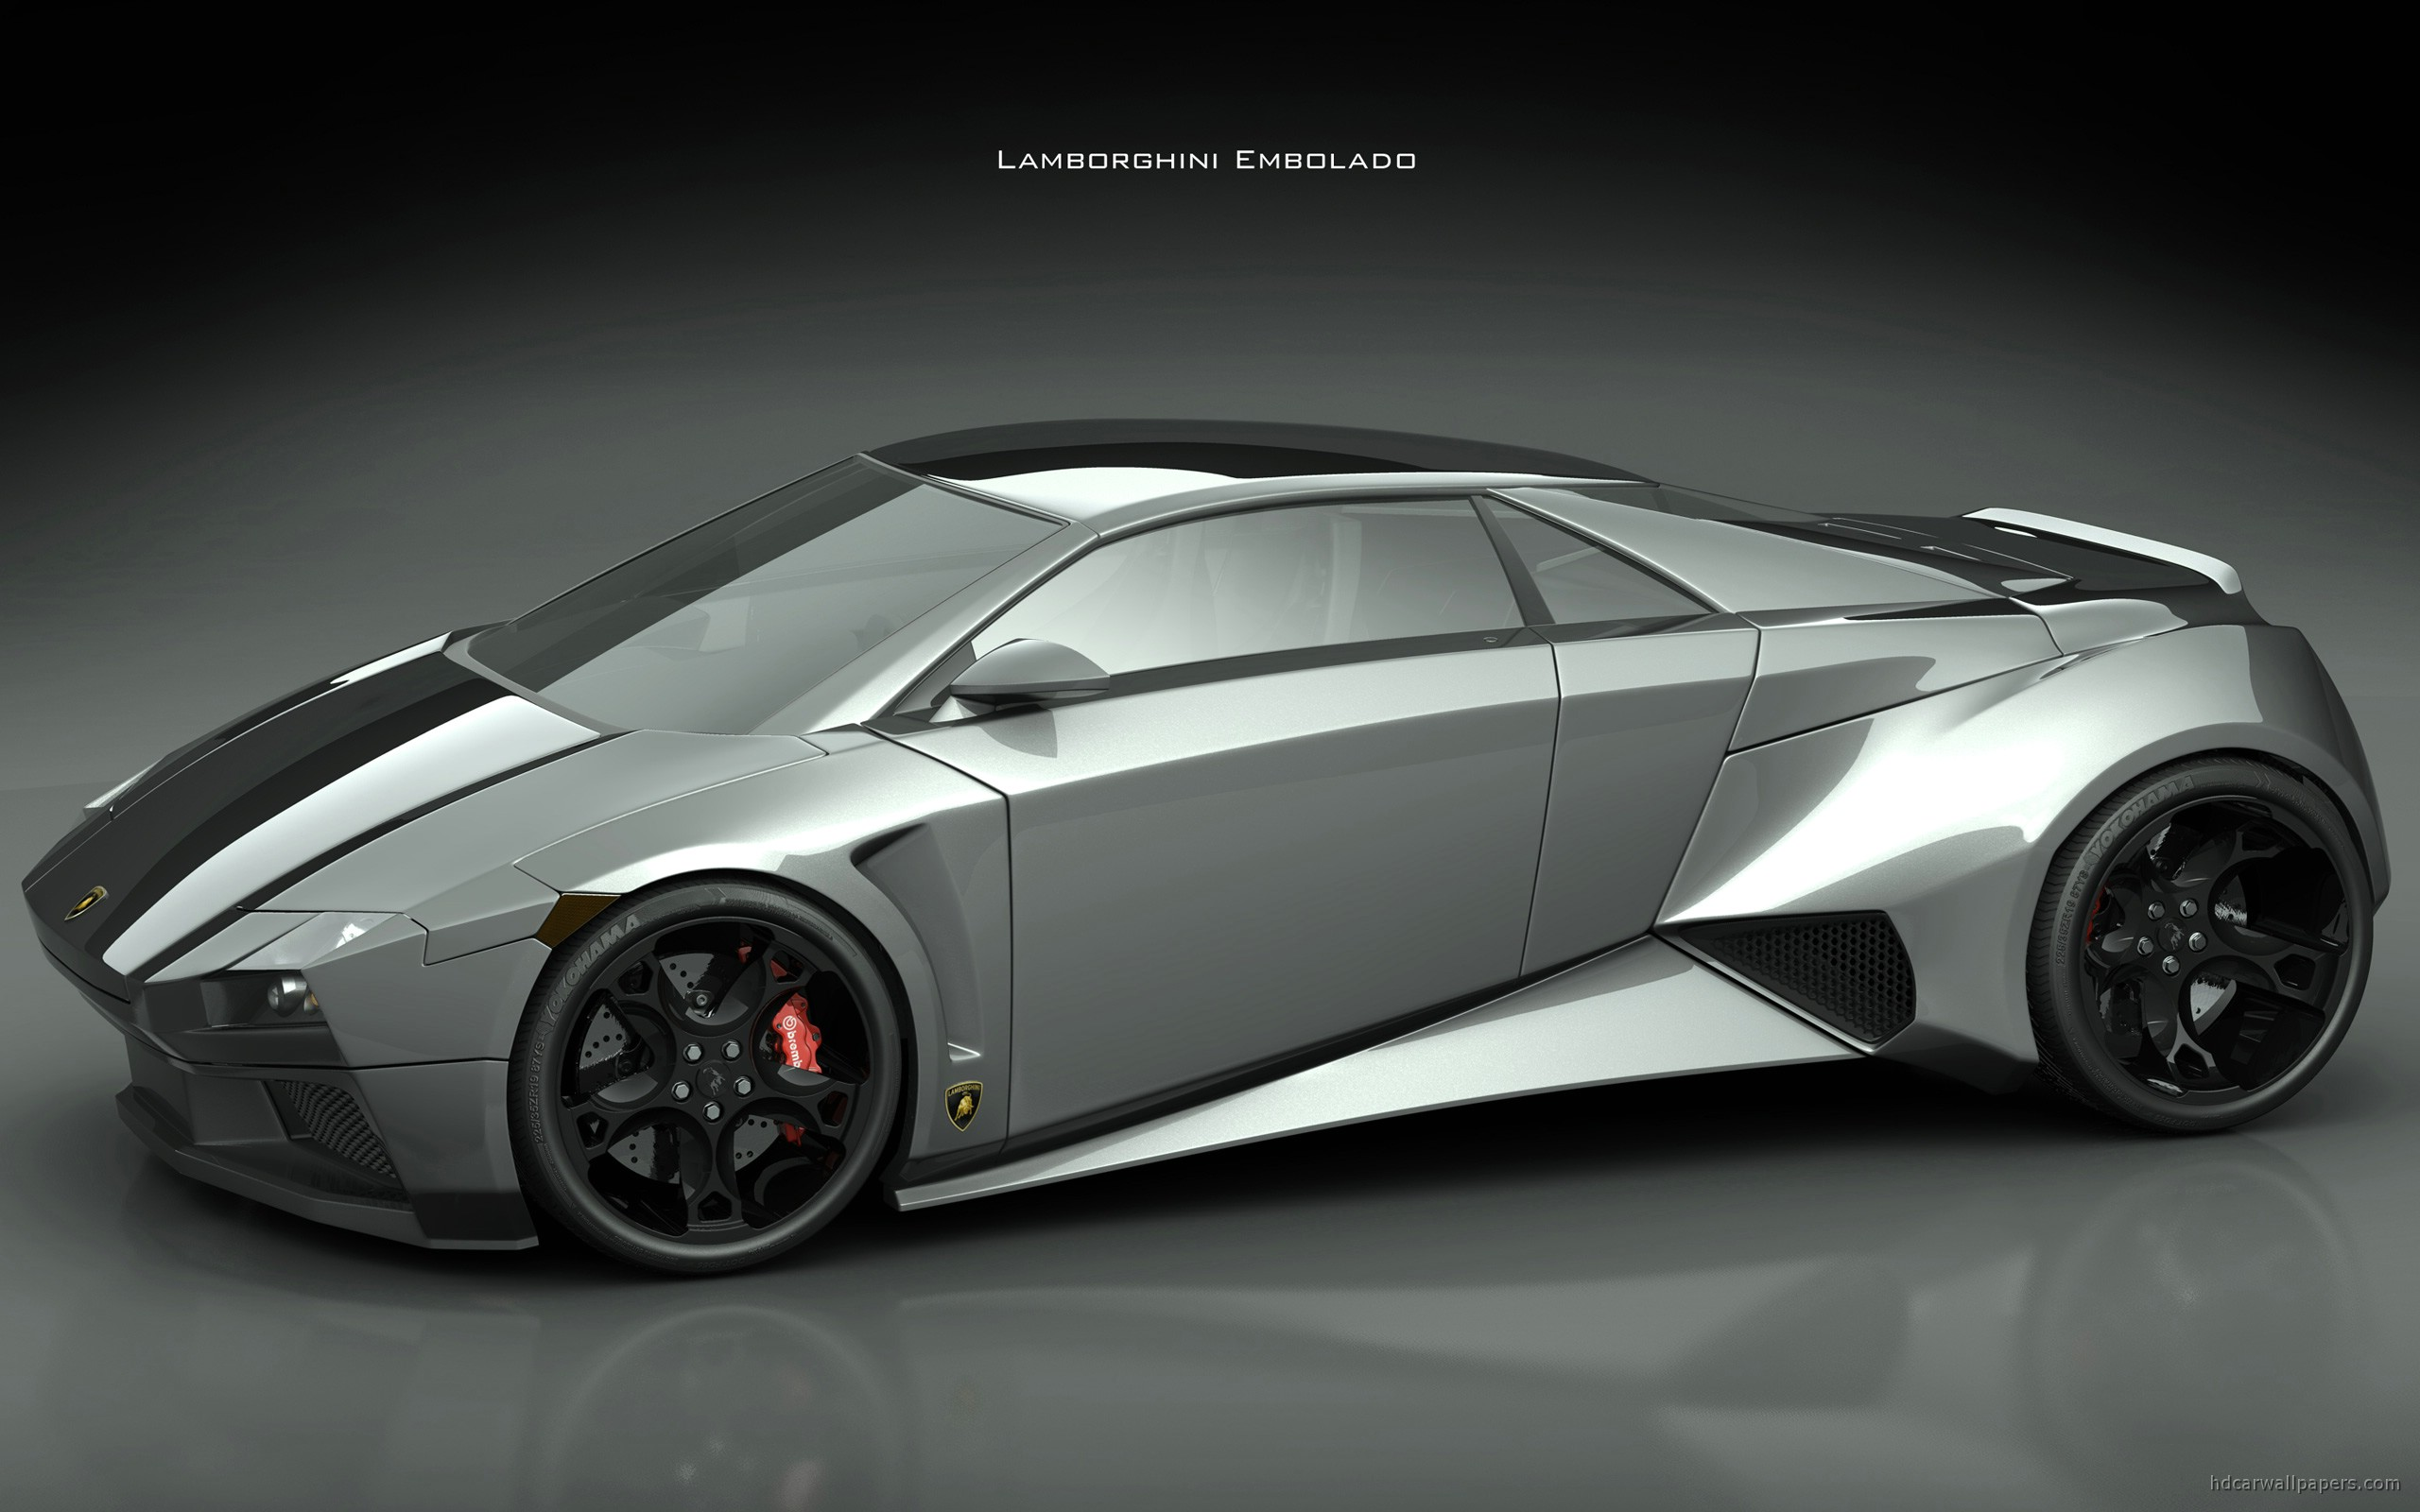 Lamborghini Embolado Wallpaper HD Car Wallpapers 2560x1600